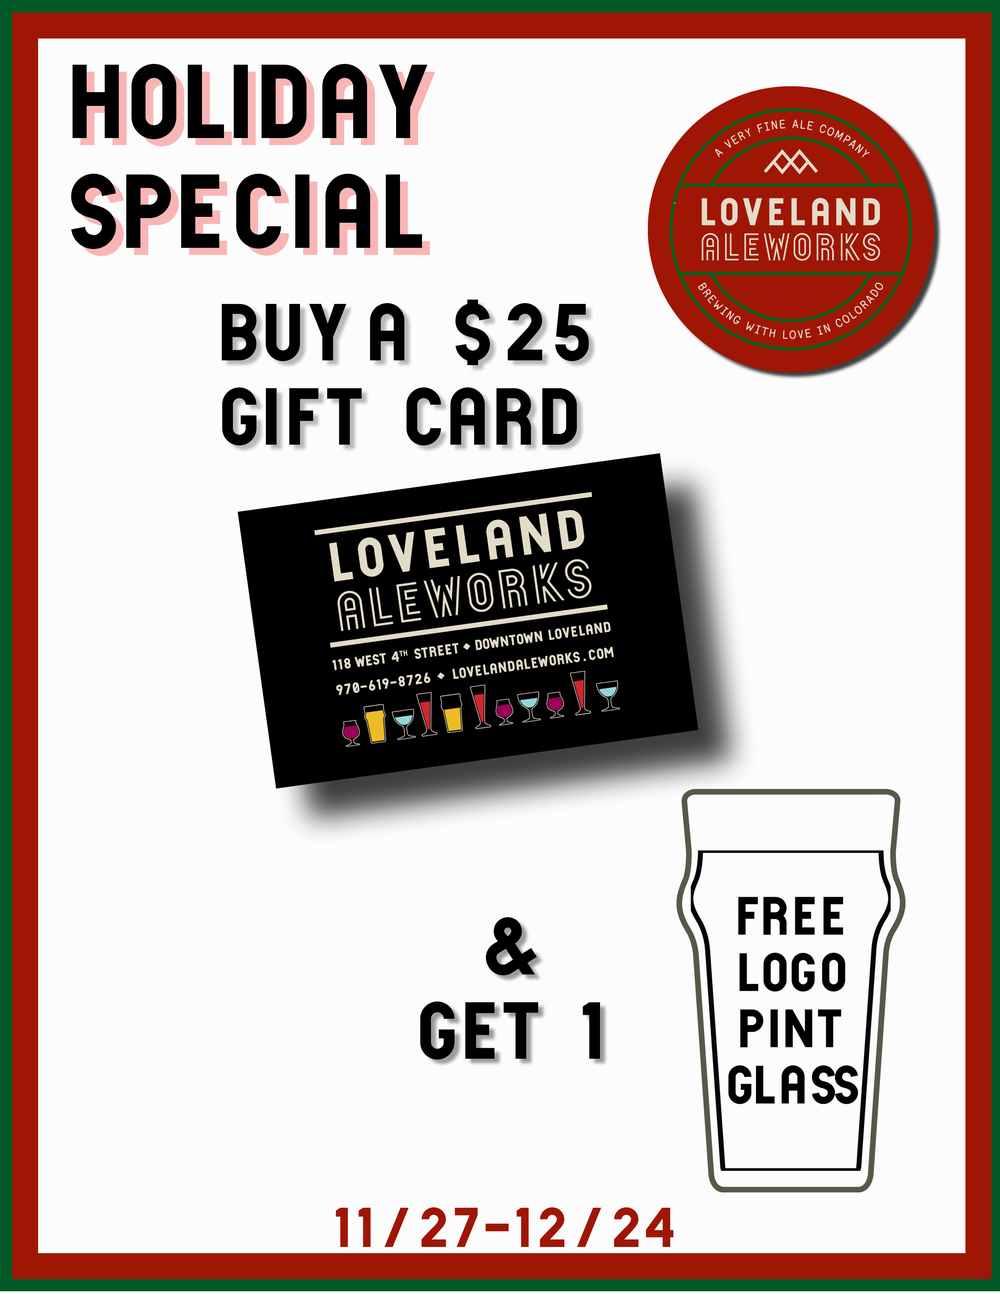 POINT-OF-SALE-GLASS-GIFT-CARD-edit.jpg